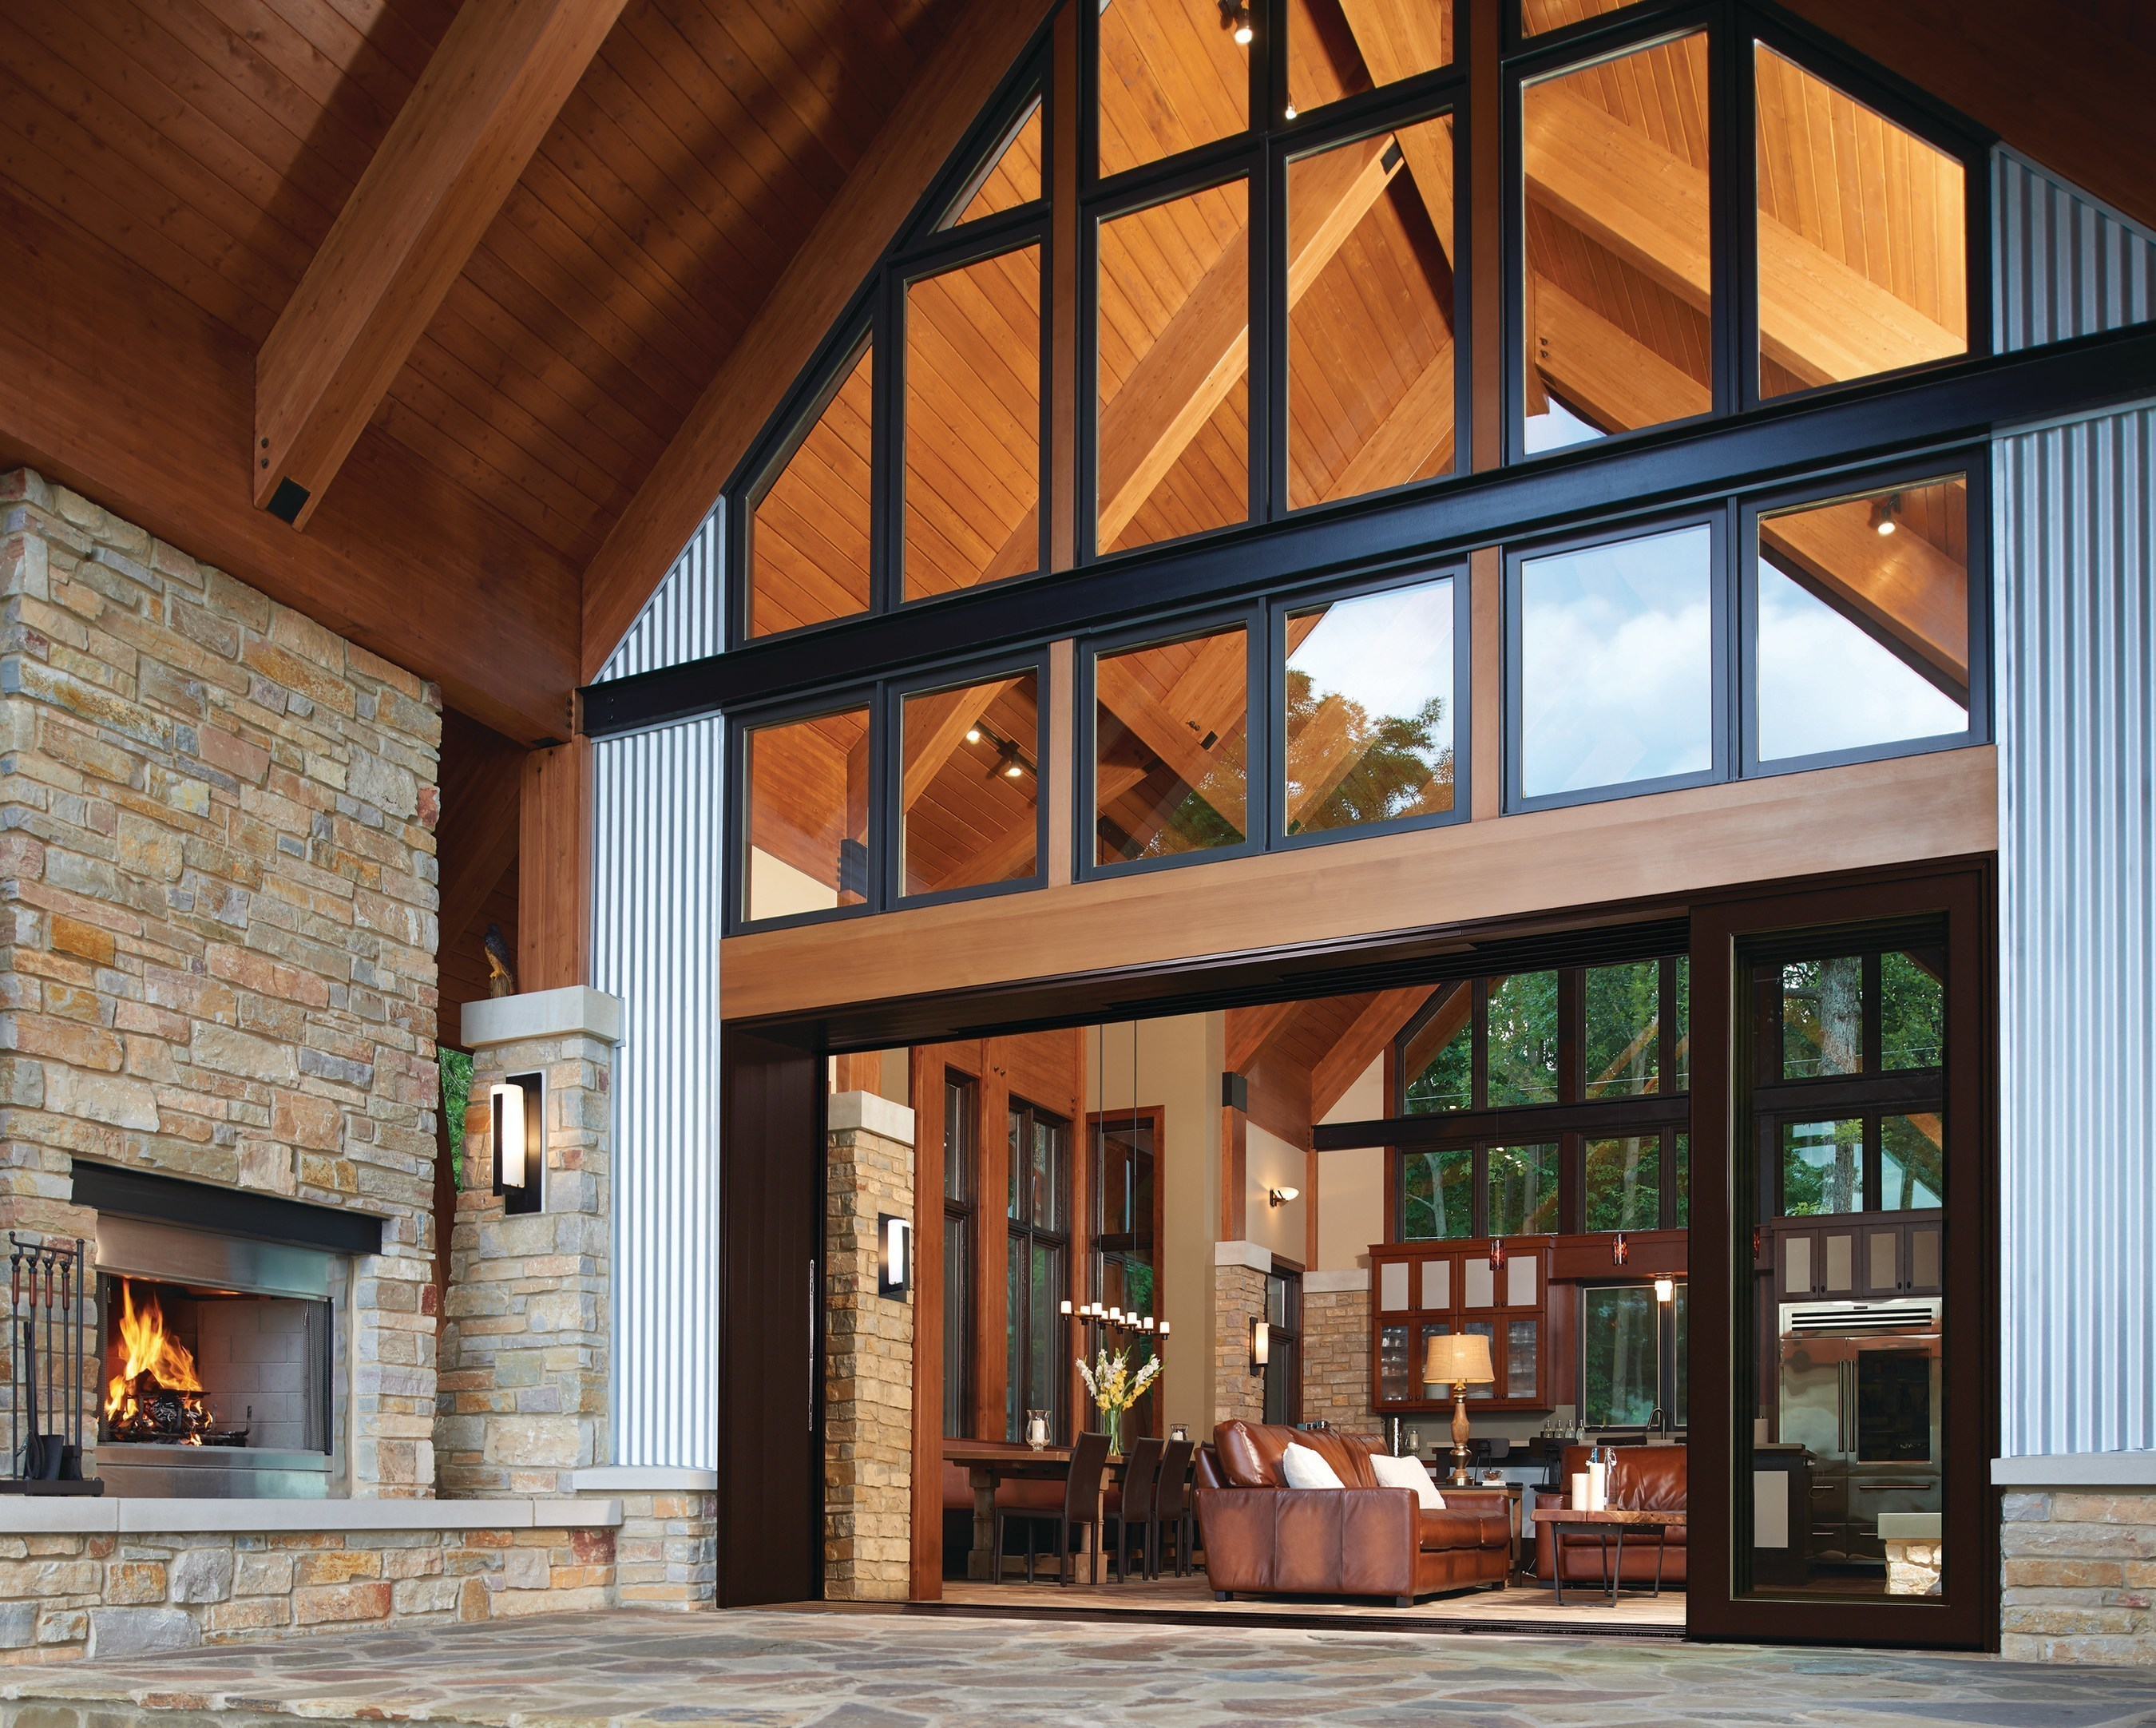 Marvin(R) Windows and Doors' new Ultimate Multi-Slide Door has been honored as a 2015 Parade of Products Awards (POP @ PCBC) winner.